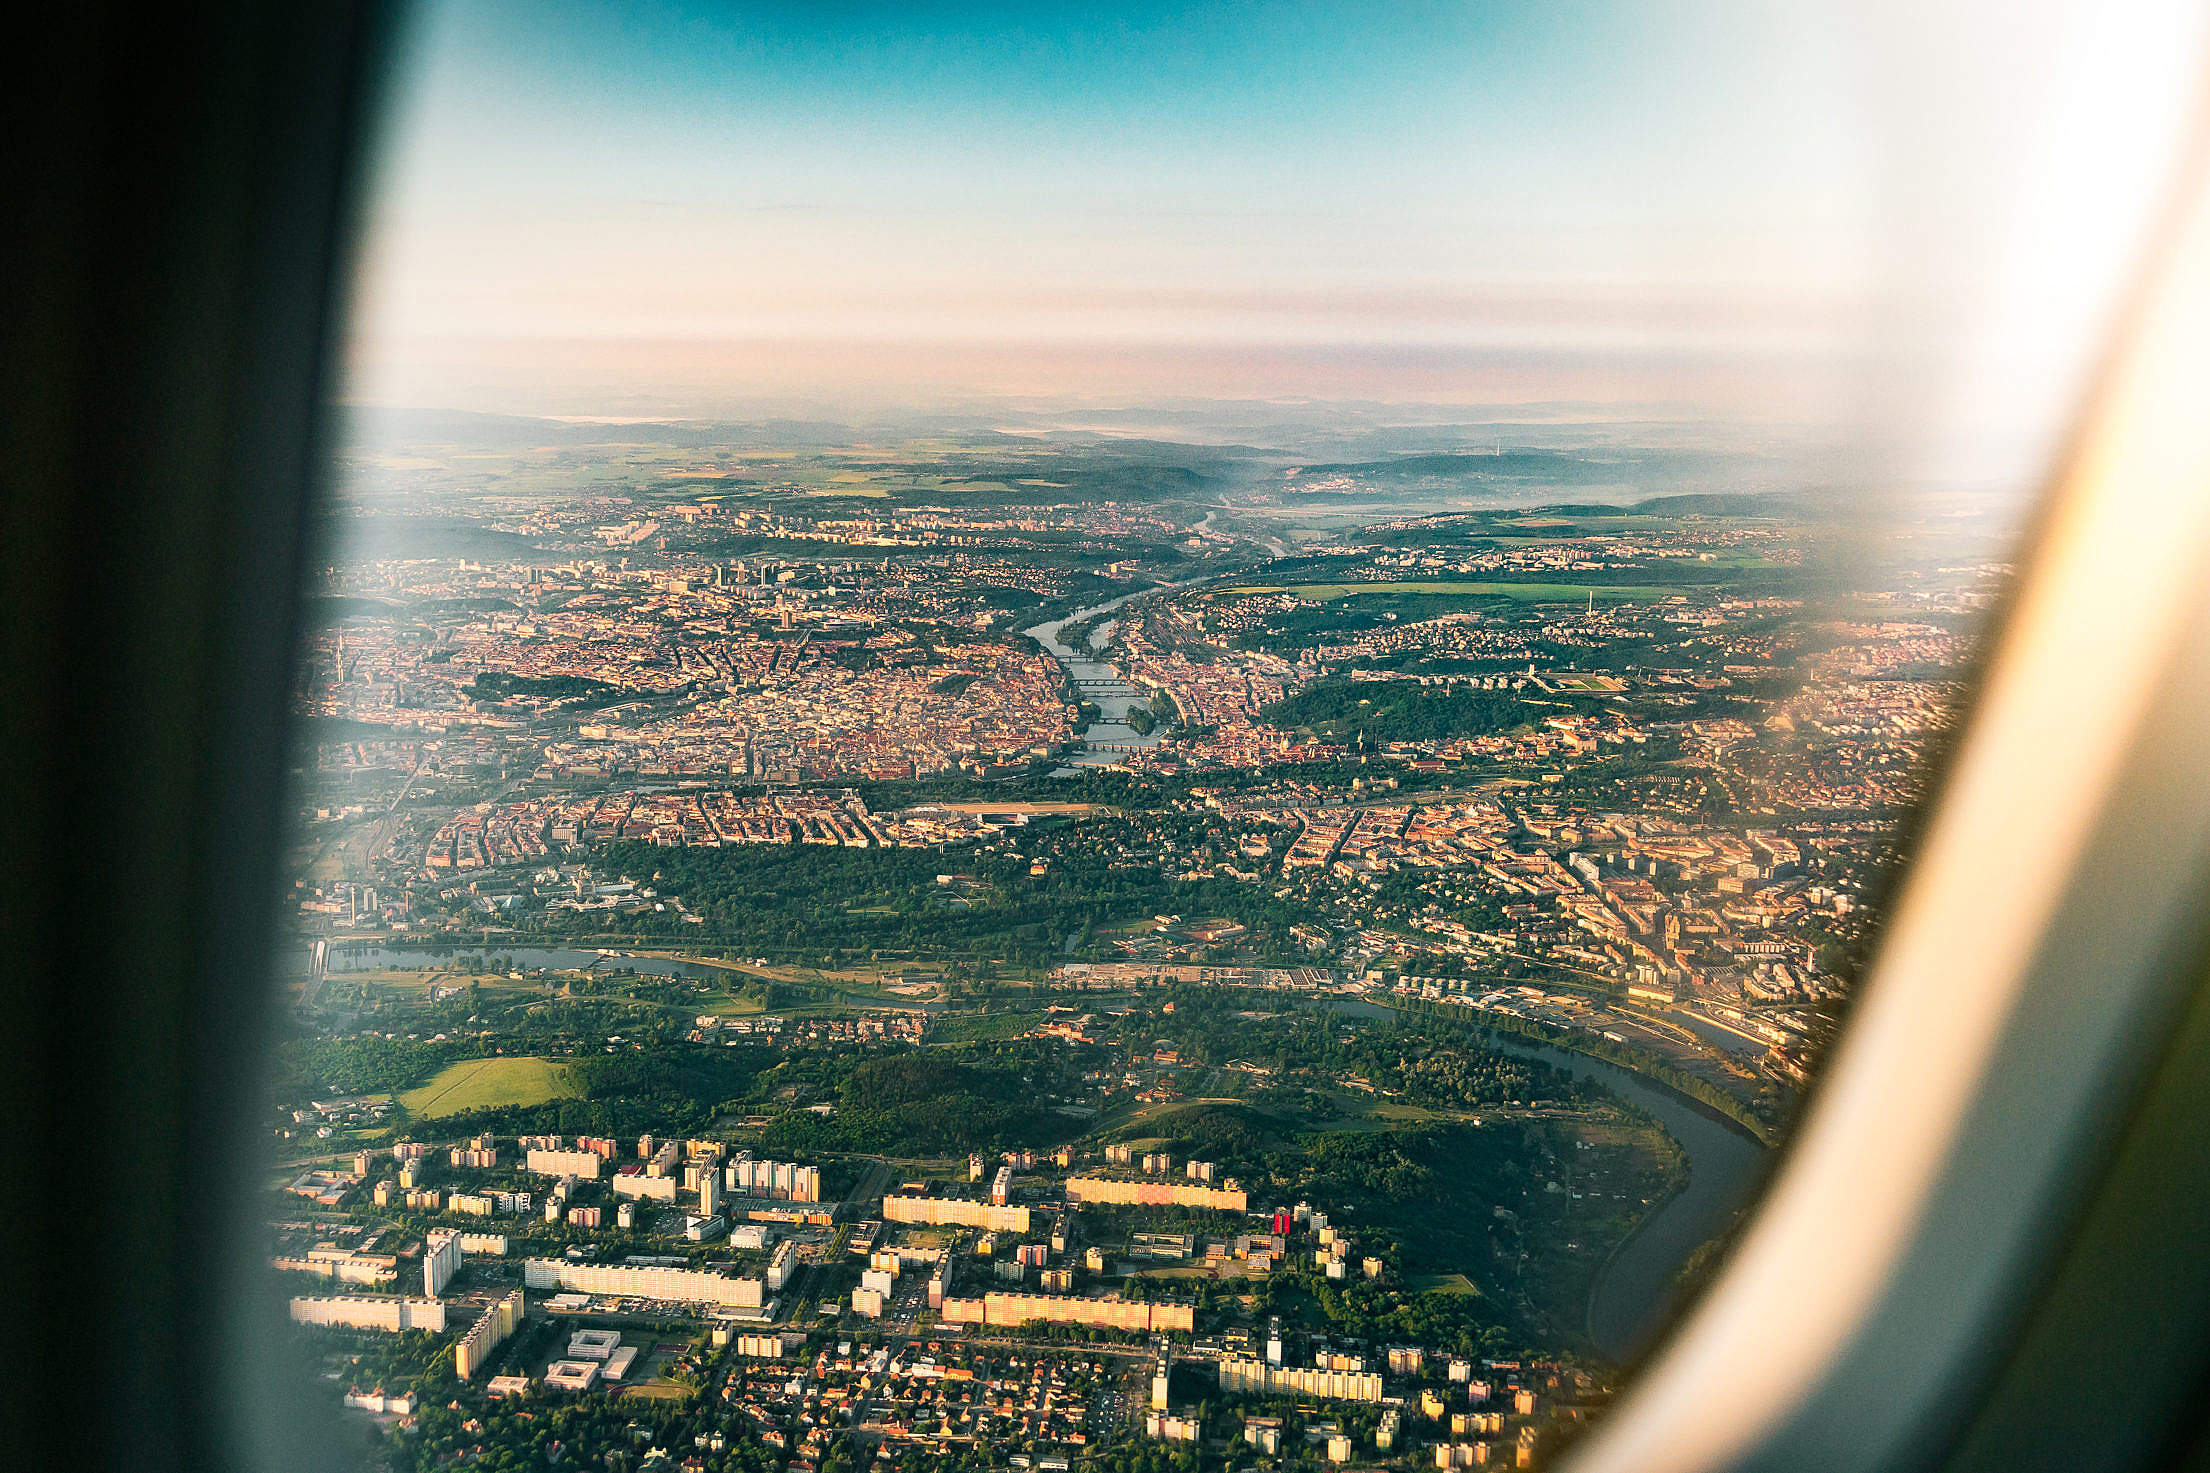 City of Prague from the Airplane Window Free Stock Photo